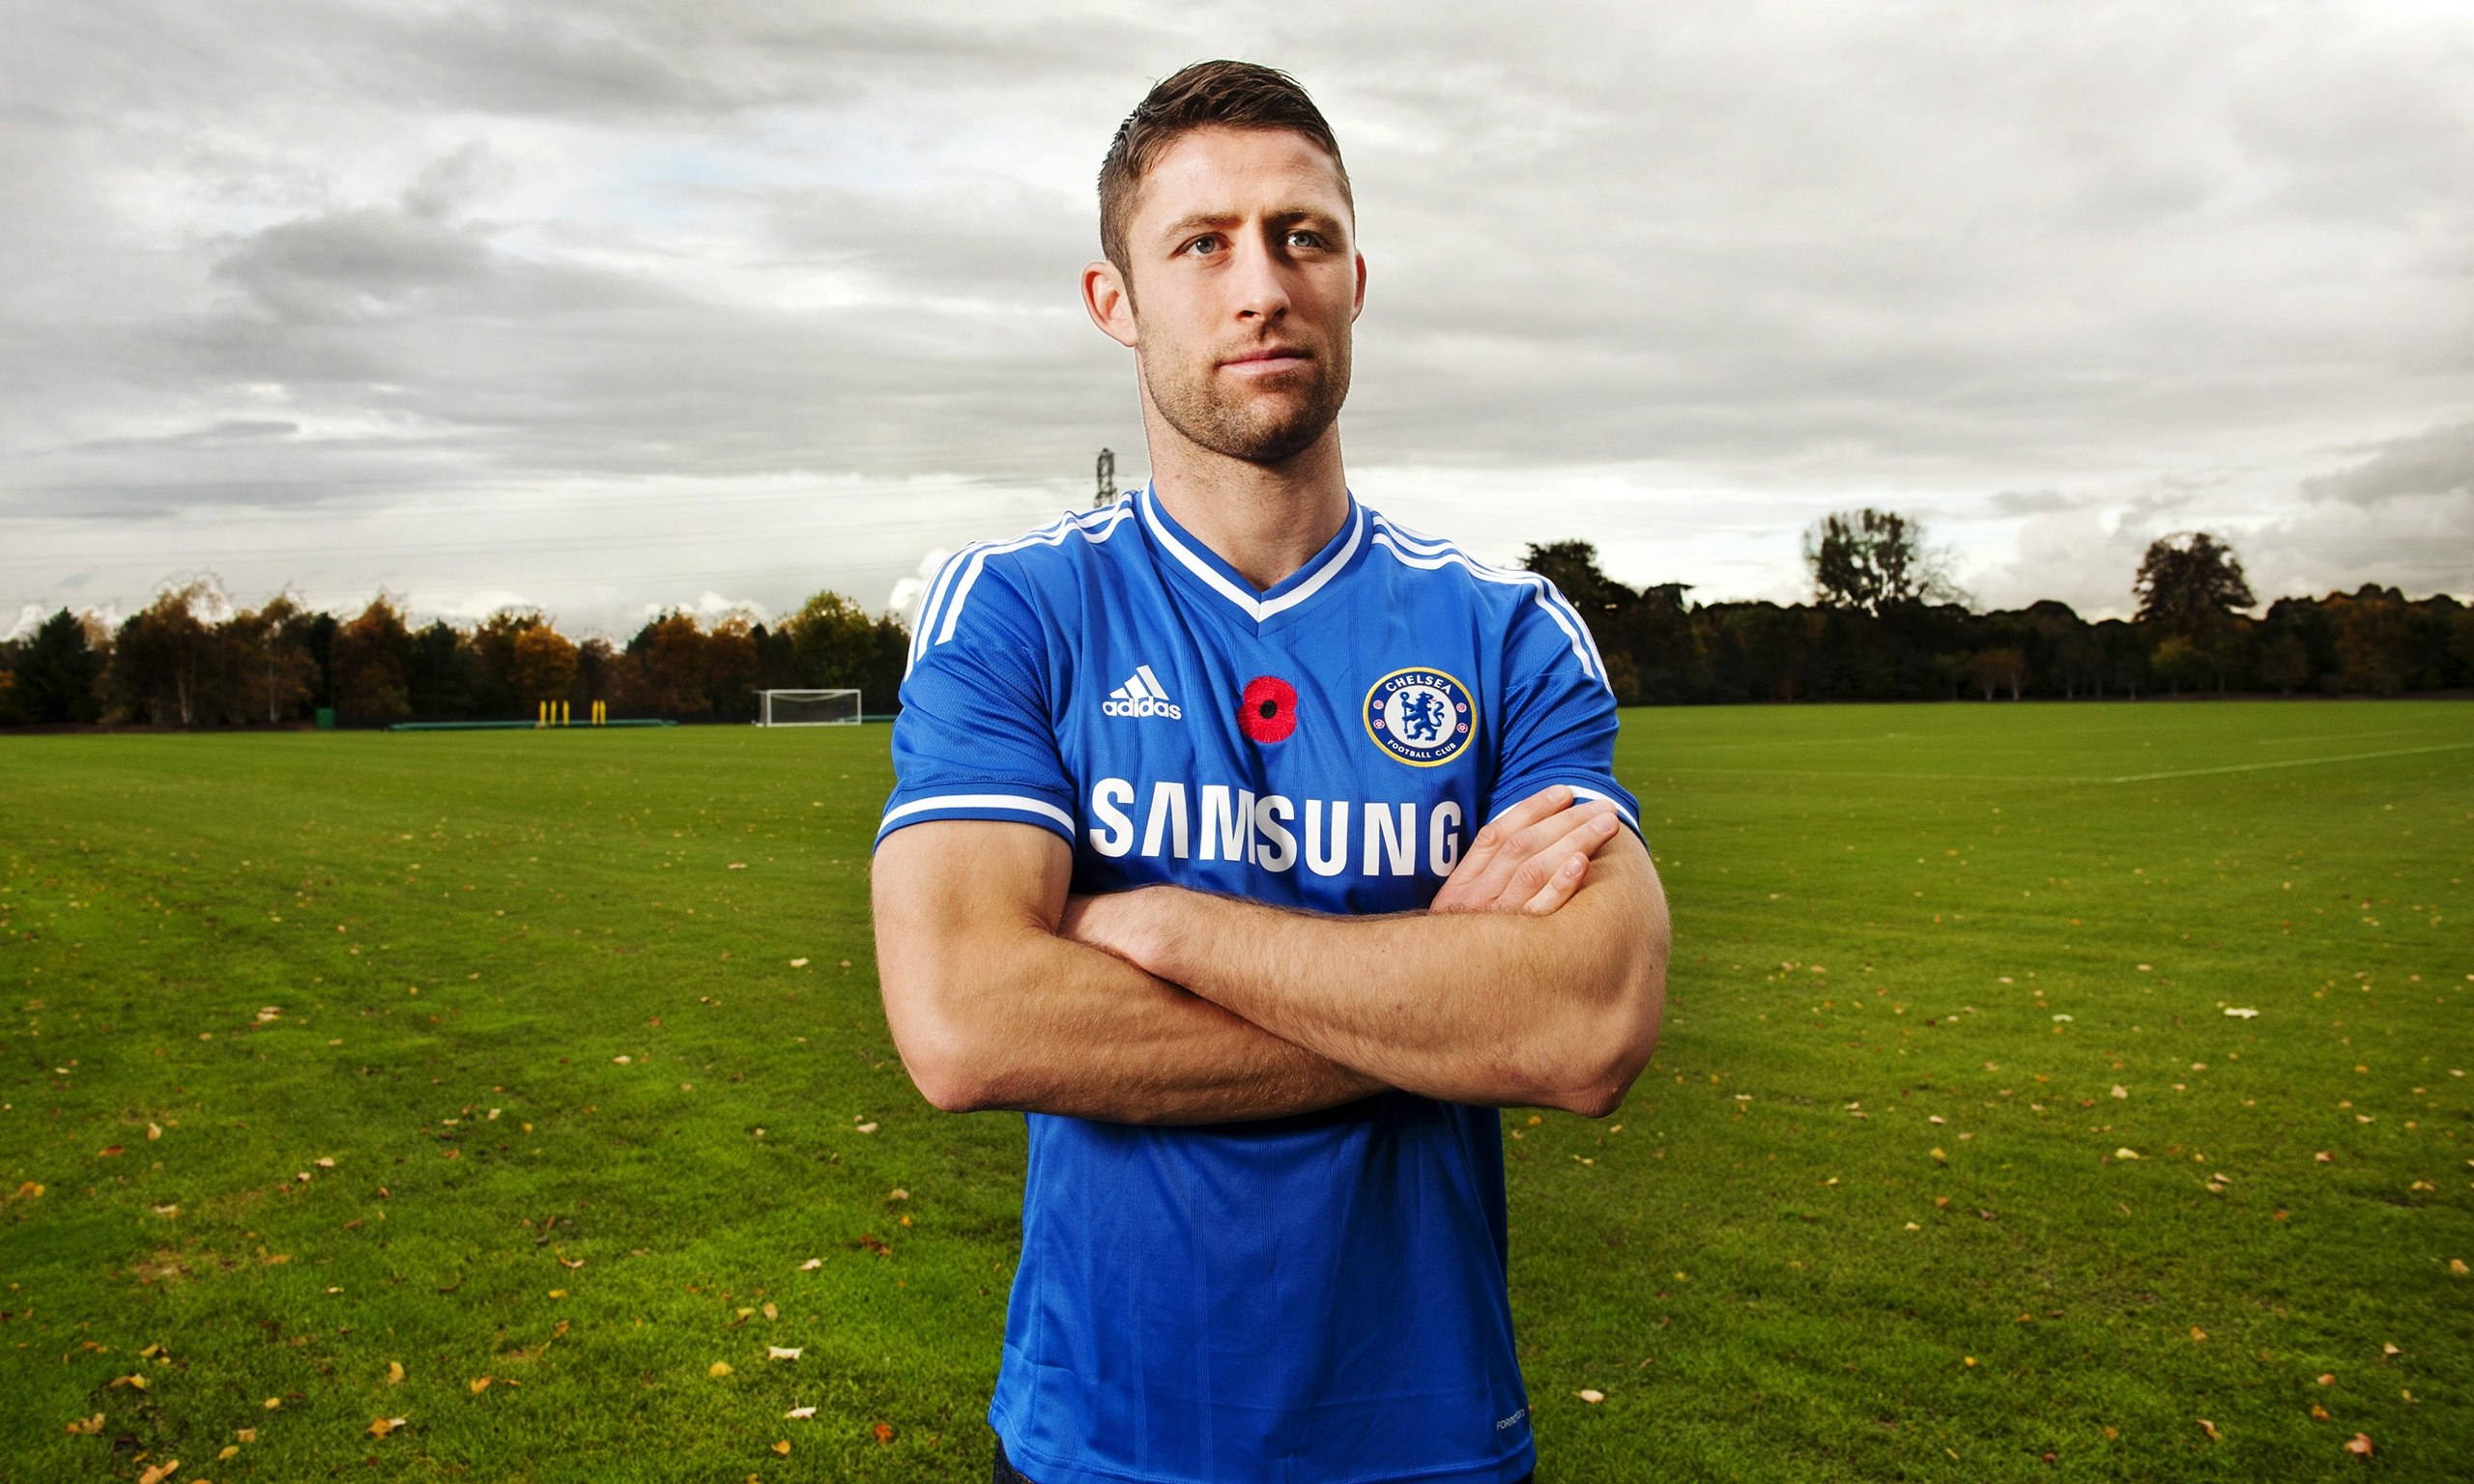 http://static.guim.co.uk/sys-images/Football/Pix/pictures/2013/11/8/1383935223764/Gary-Cahill--014.jpg